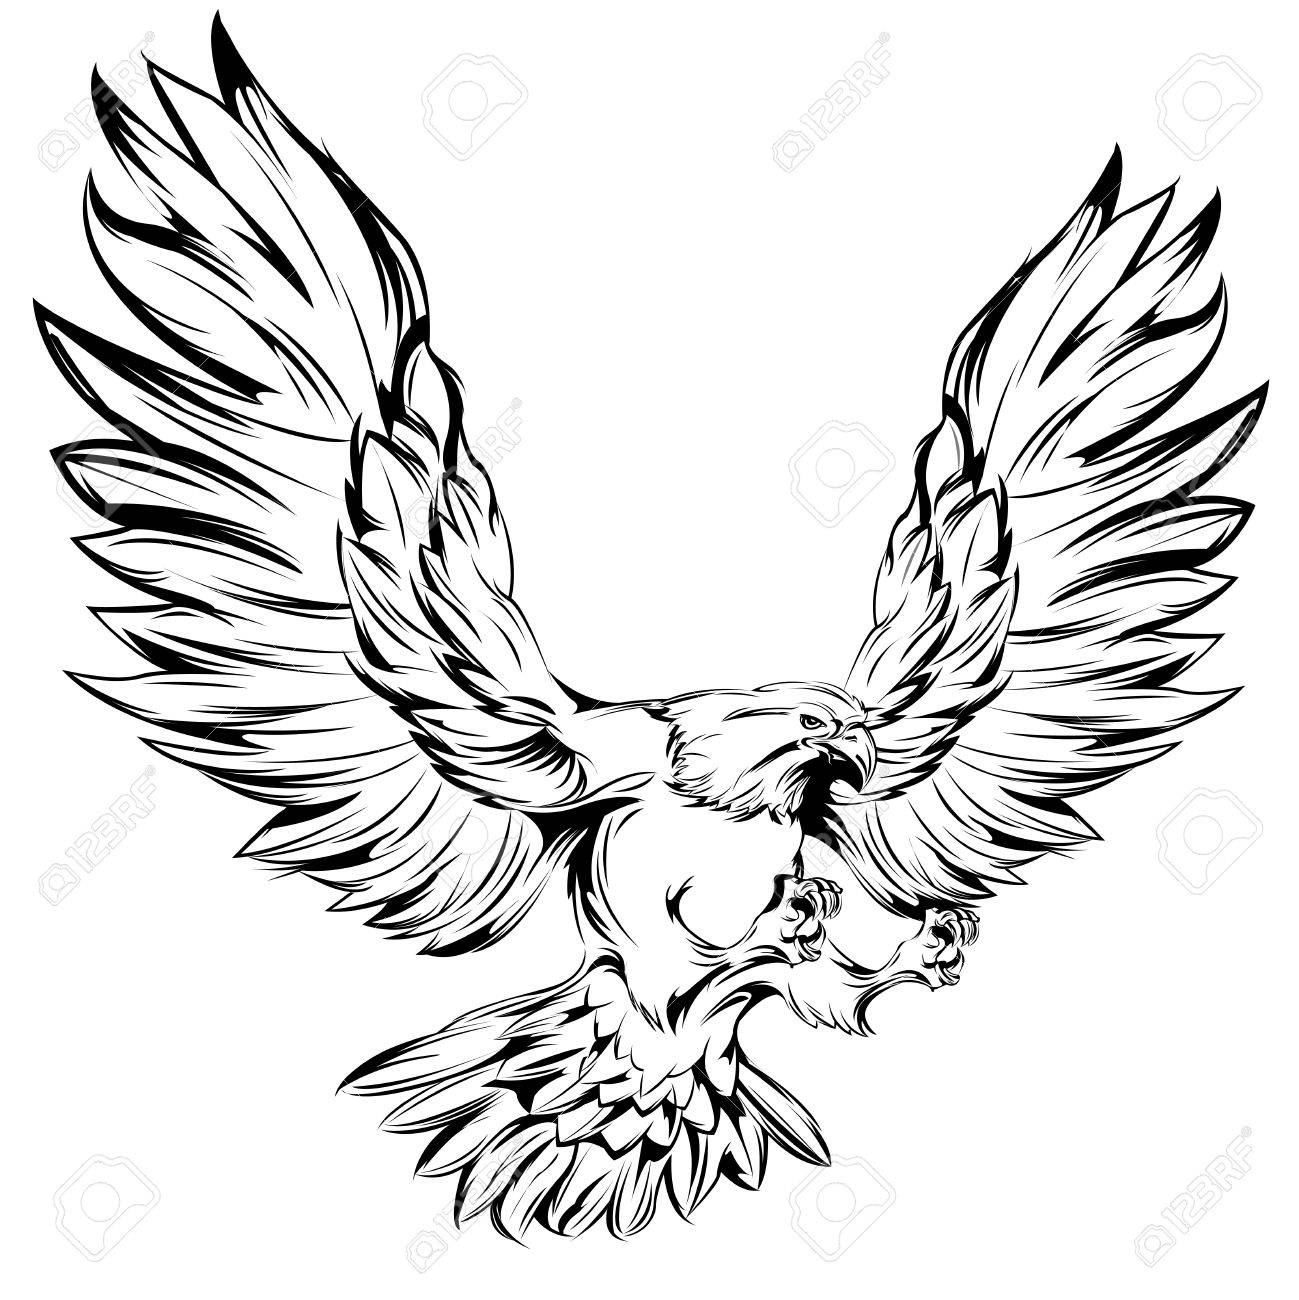 1299x1300 Monochrome Eagle During Landing With Raised Wings And Outstretched